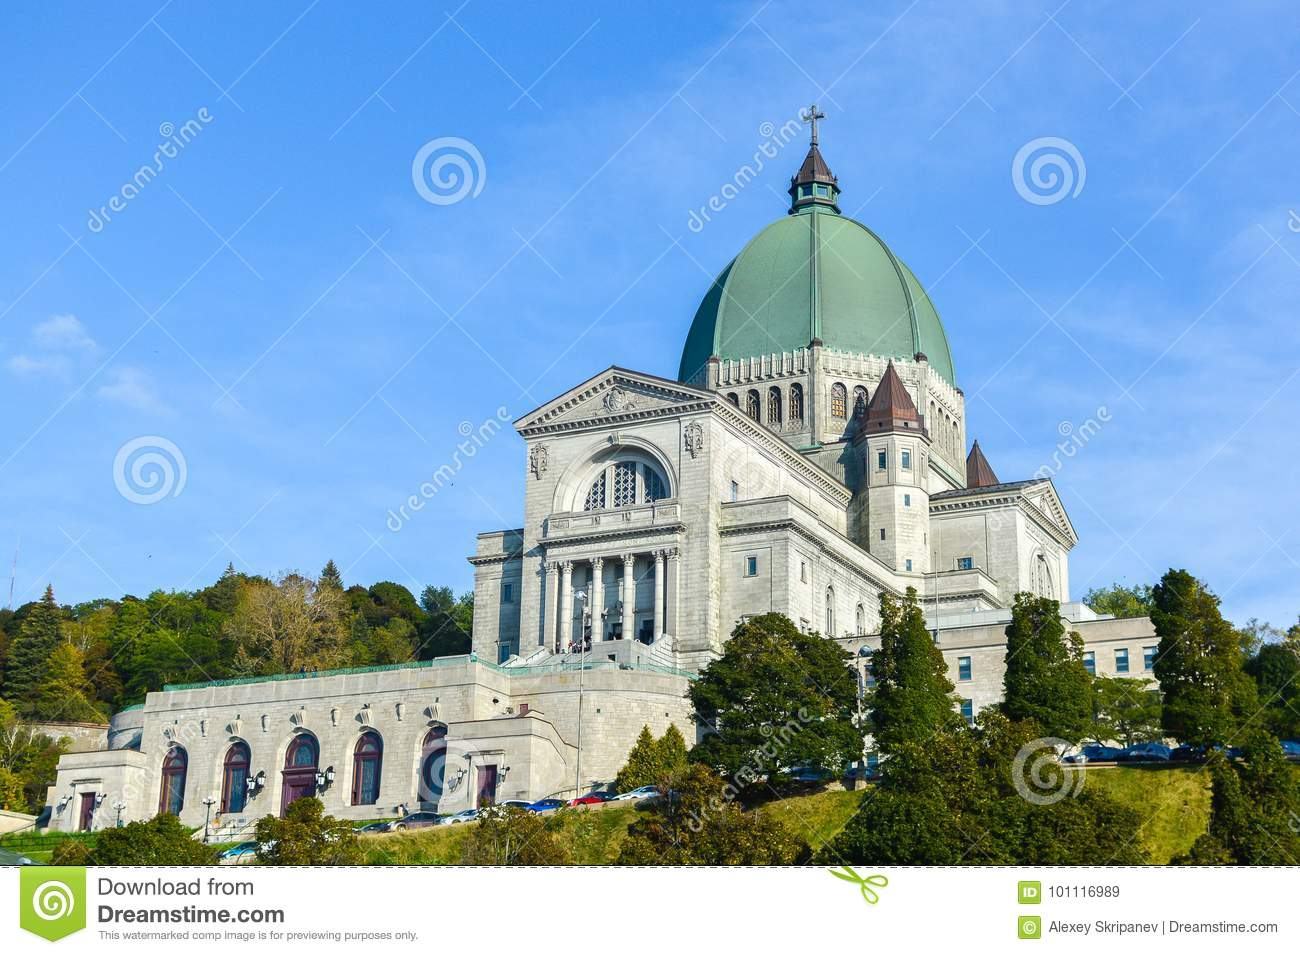 Saint Joseph`s Oratory of Mount Royal located in Montreal